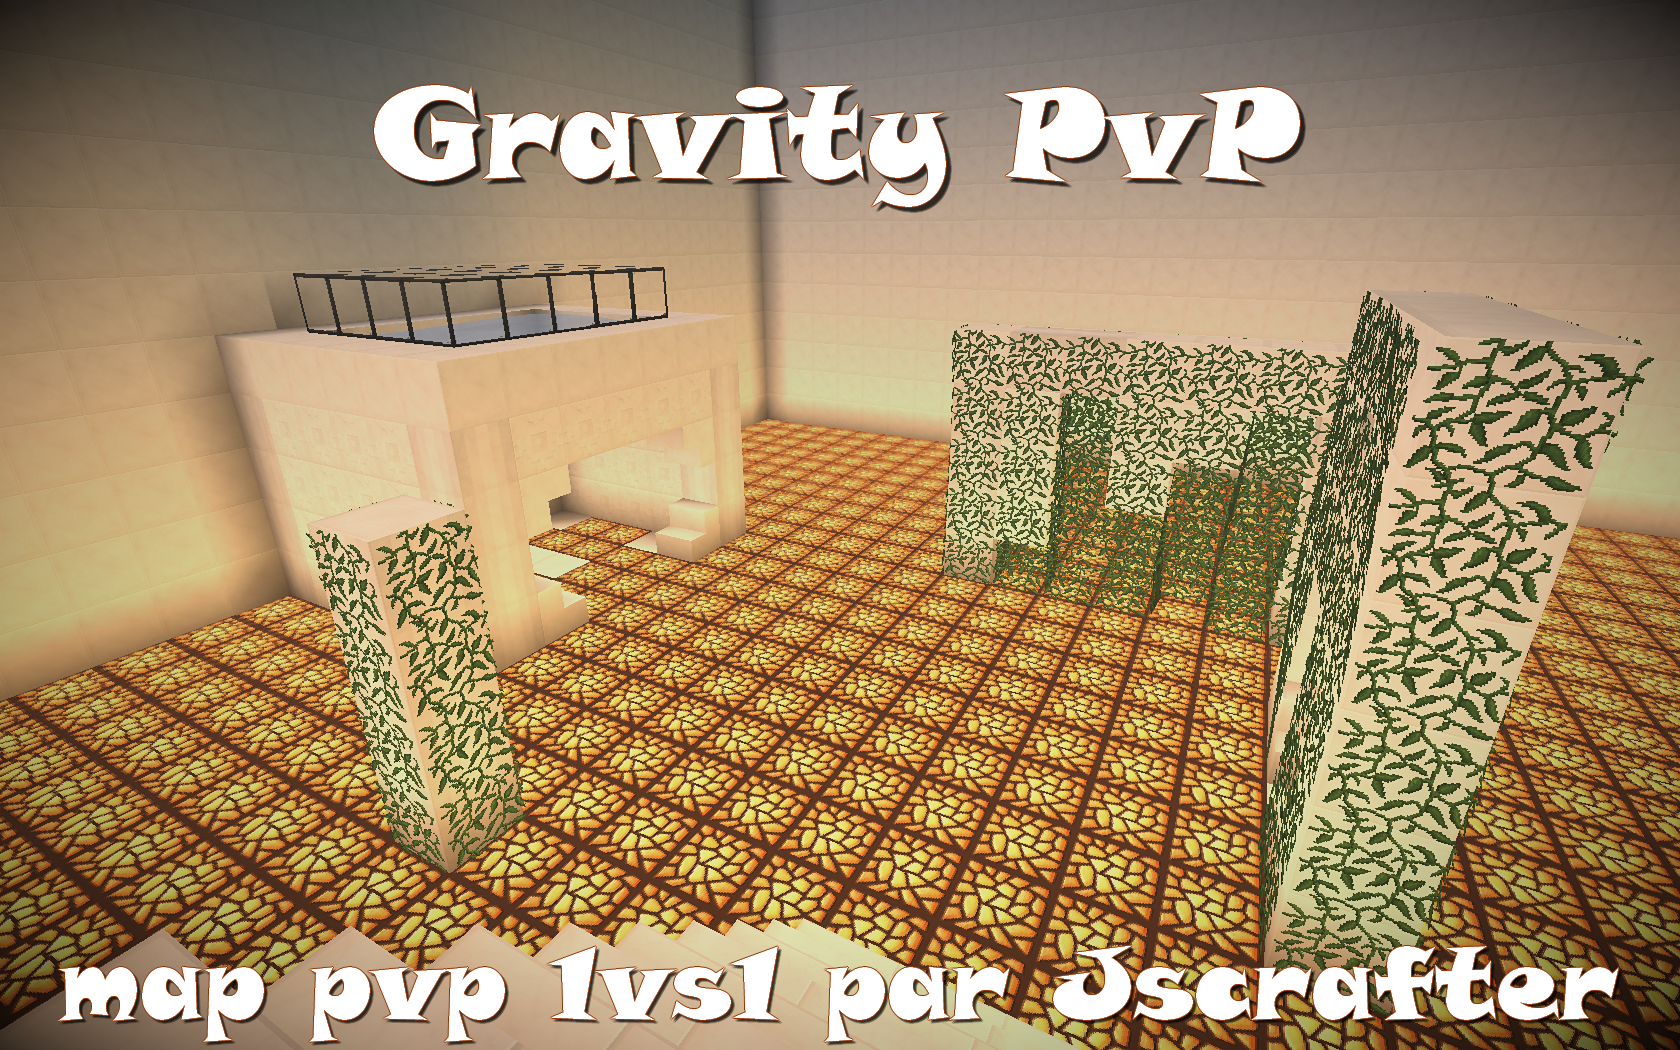 minecraft-map-pvp-1vs1-gravity